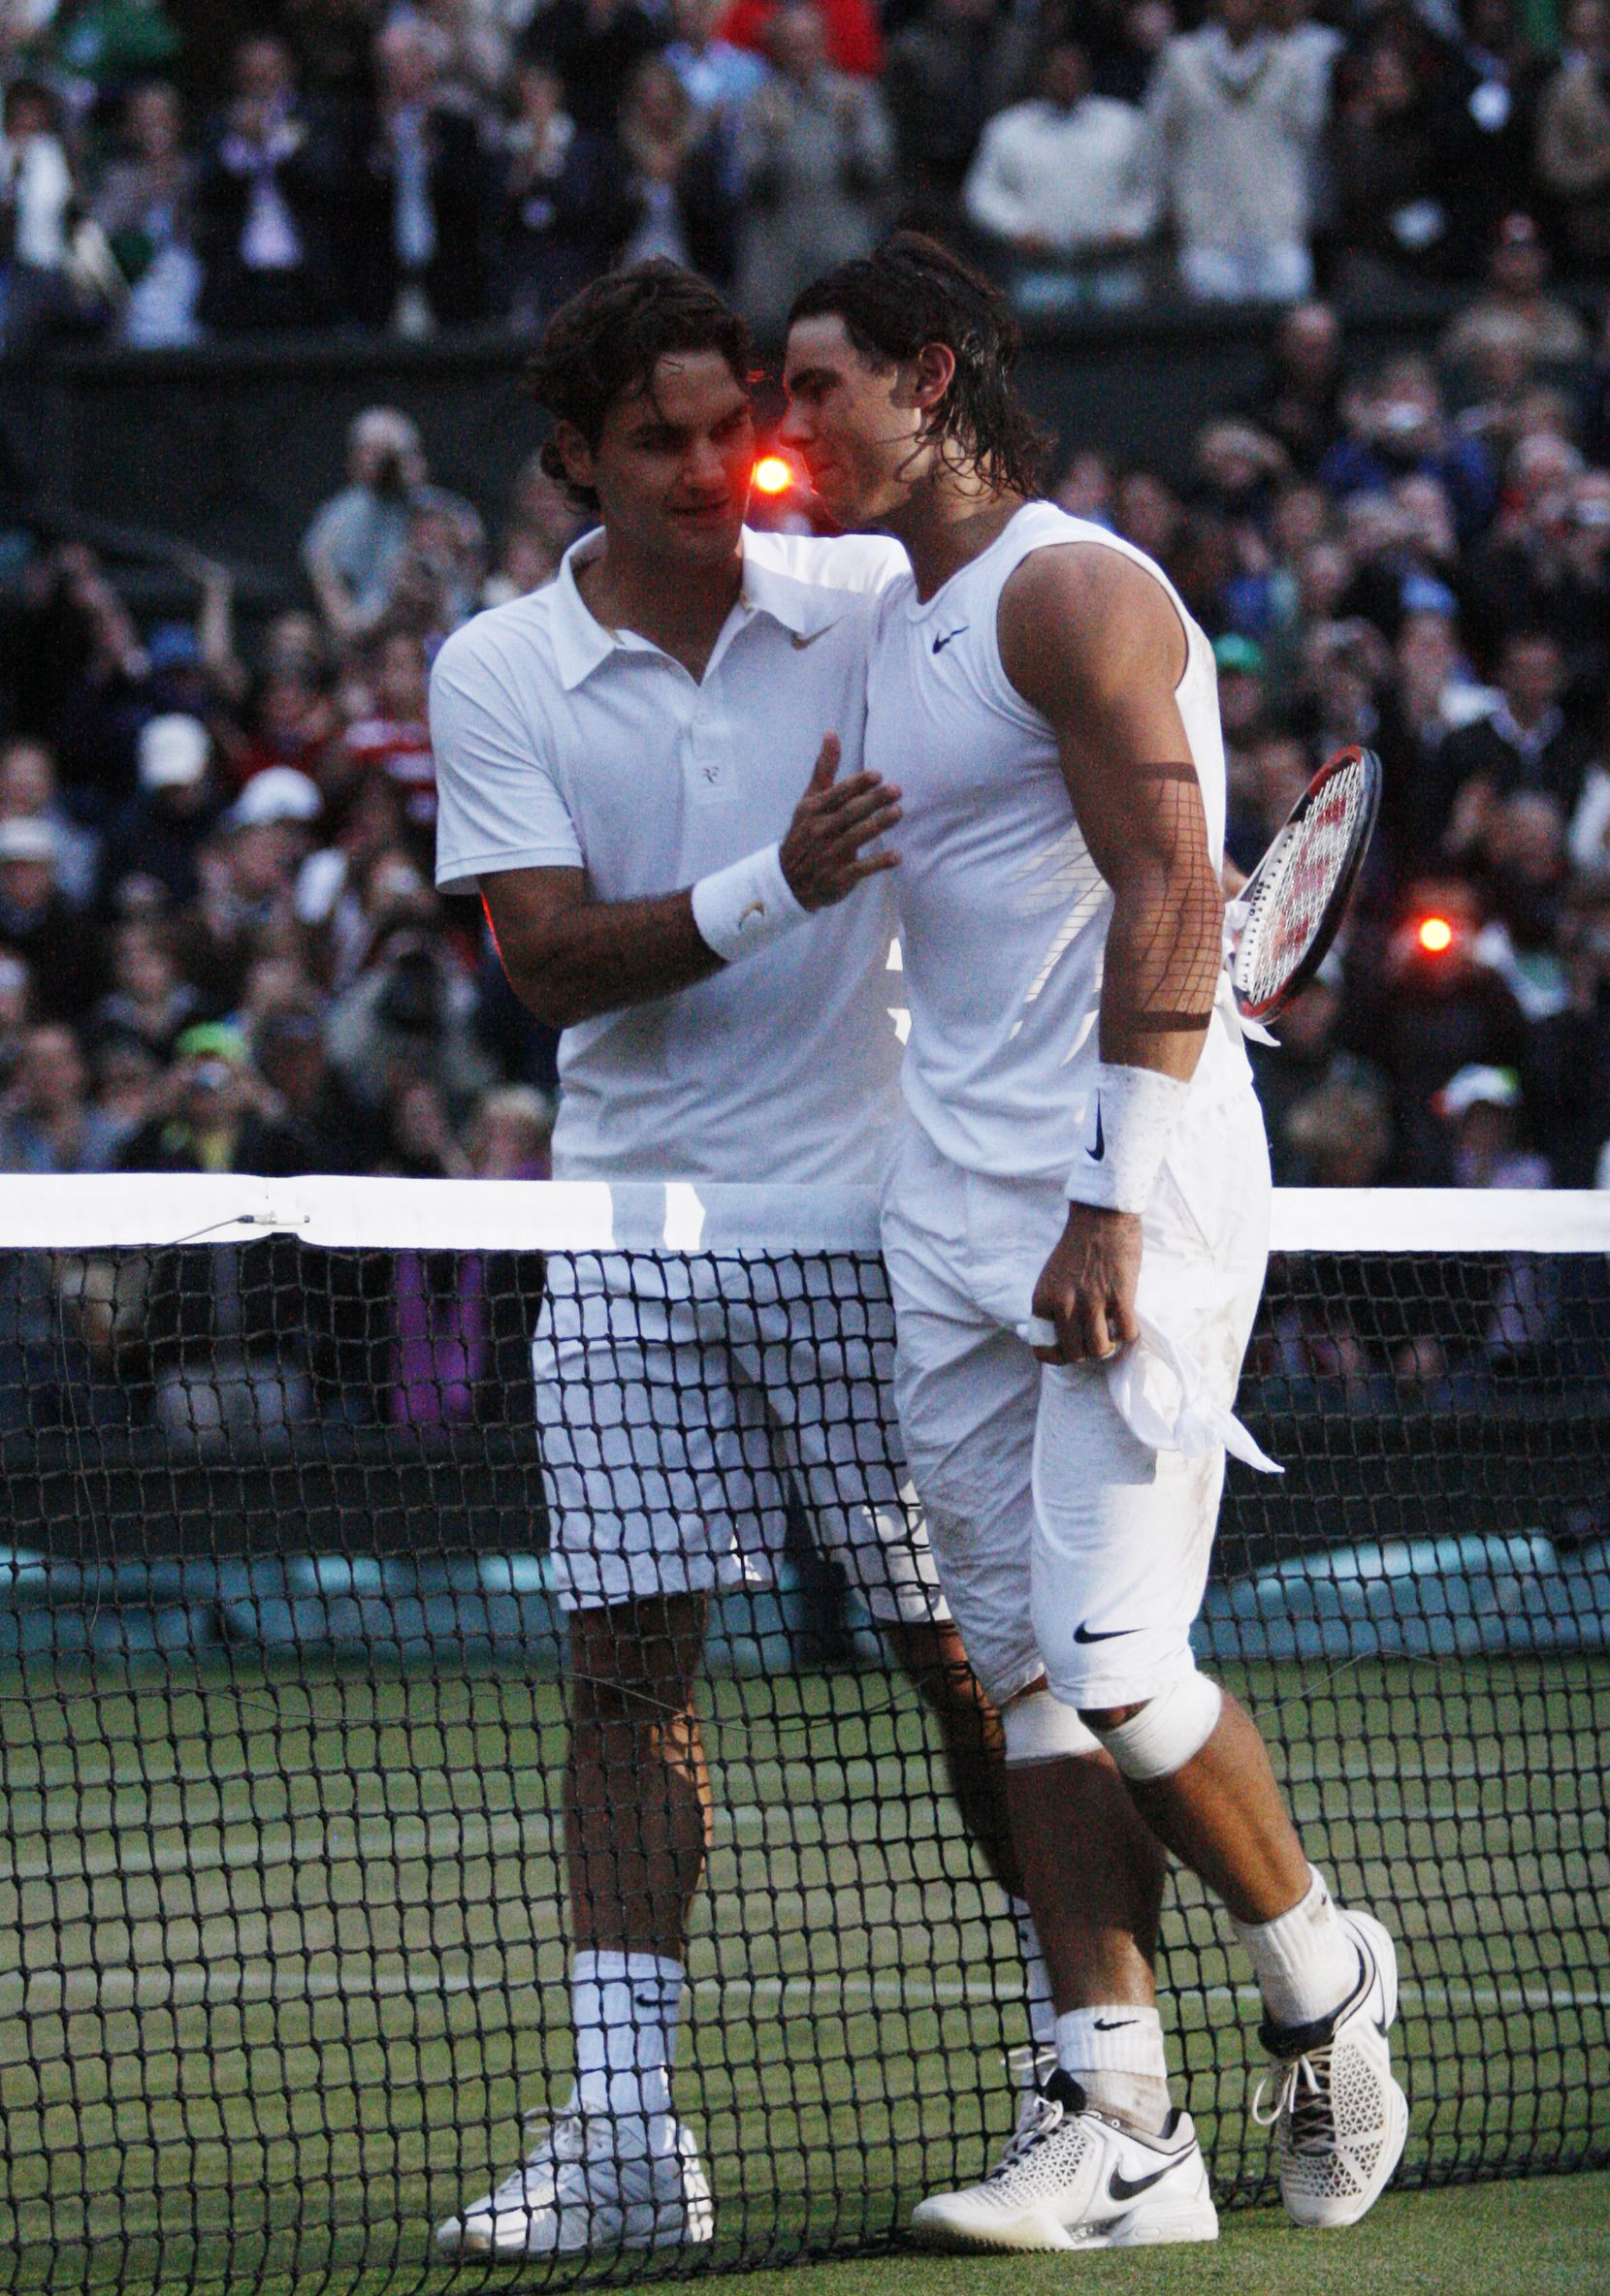 Spain's Rafael Nadal (R) is congratulated by Switzerland's Roger Federer after winning their final tennis match of the 2008 Wimbledon championships against  at The All England Tennis Club in southwest London, on July 6, 2008. Nadal won 6-4, 6-4, 6-7, 6-7, 9-7.